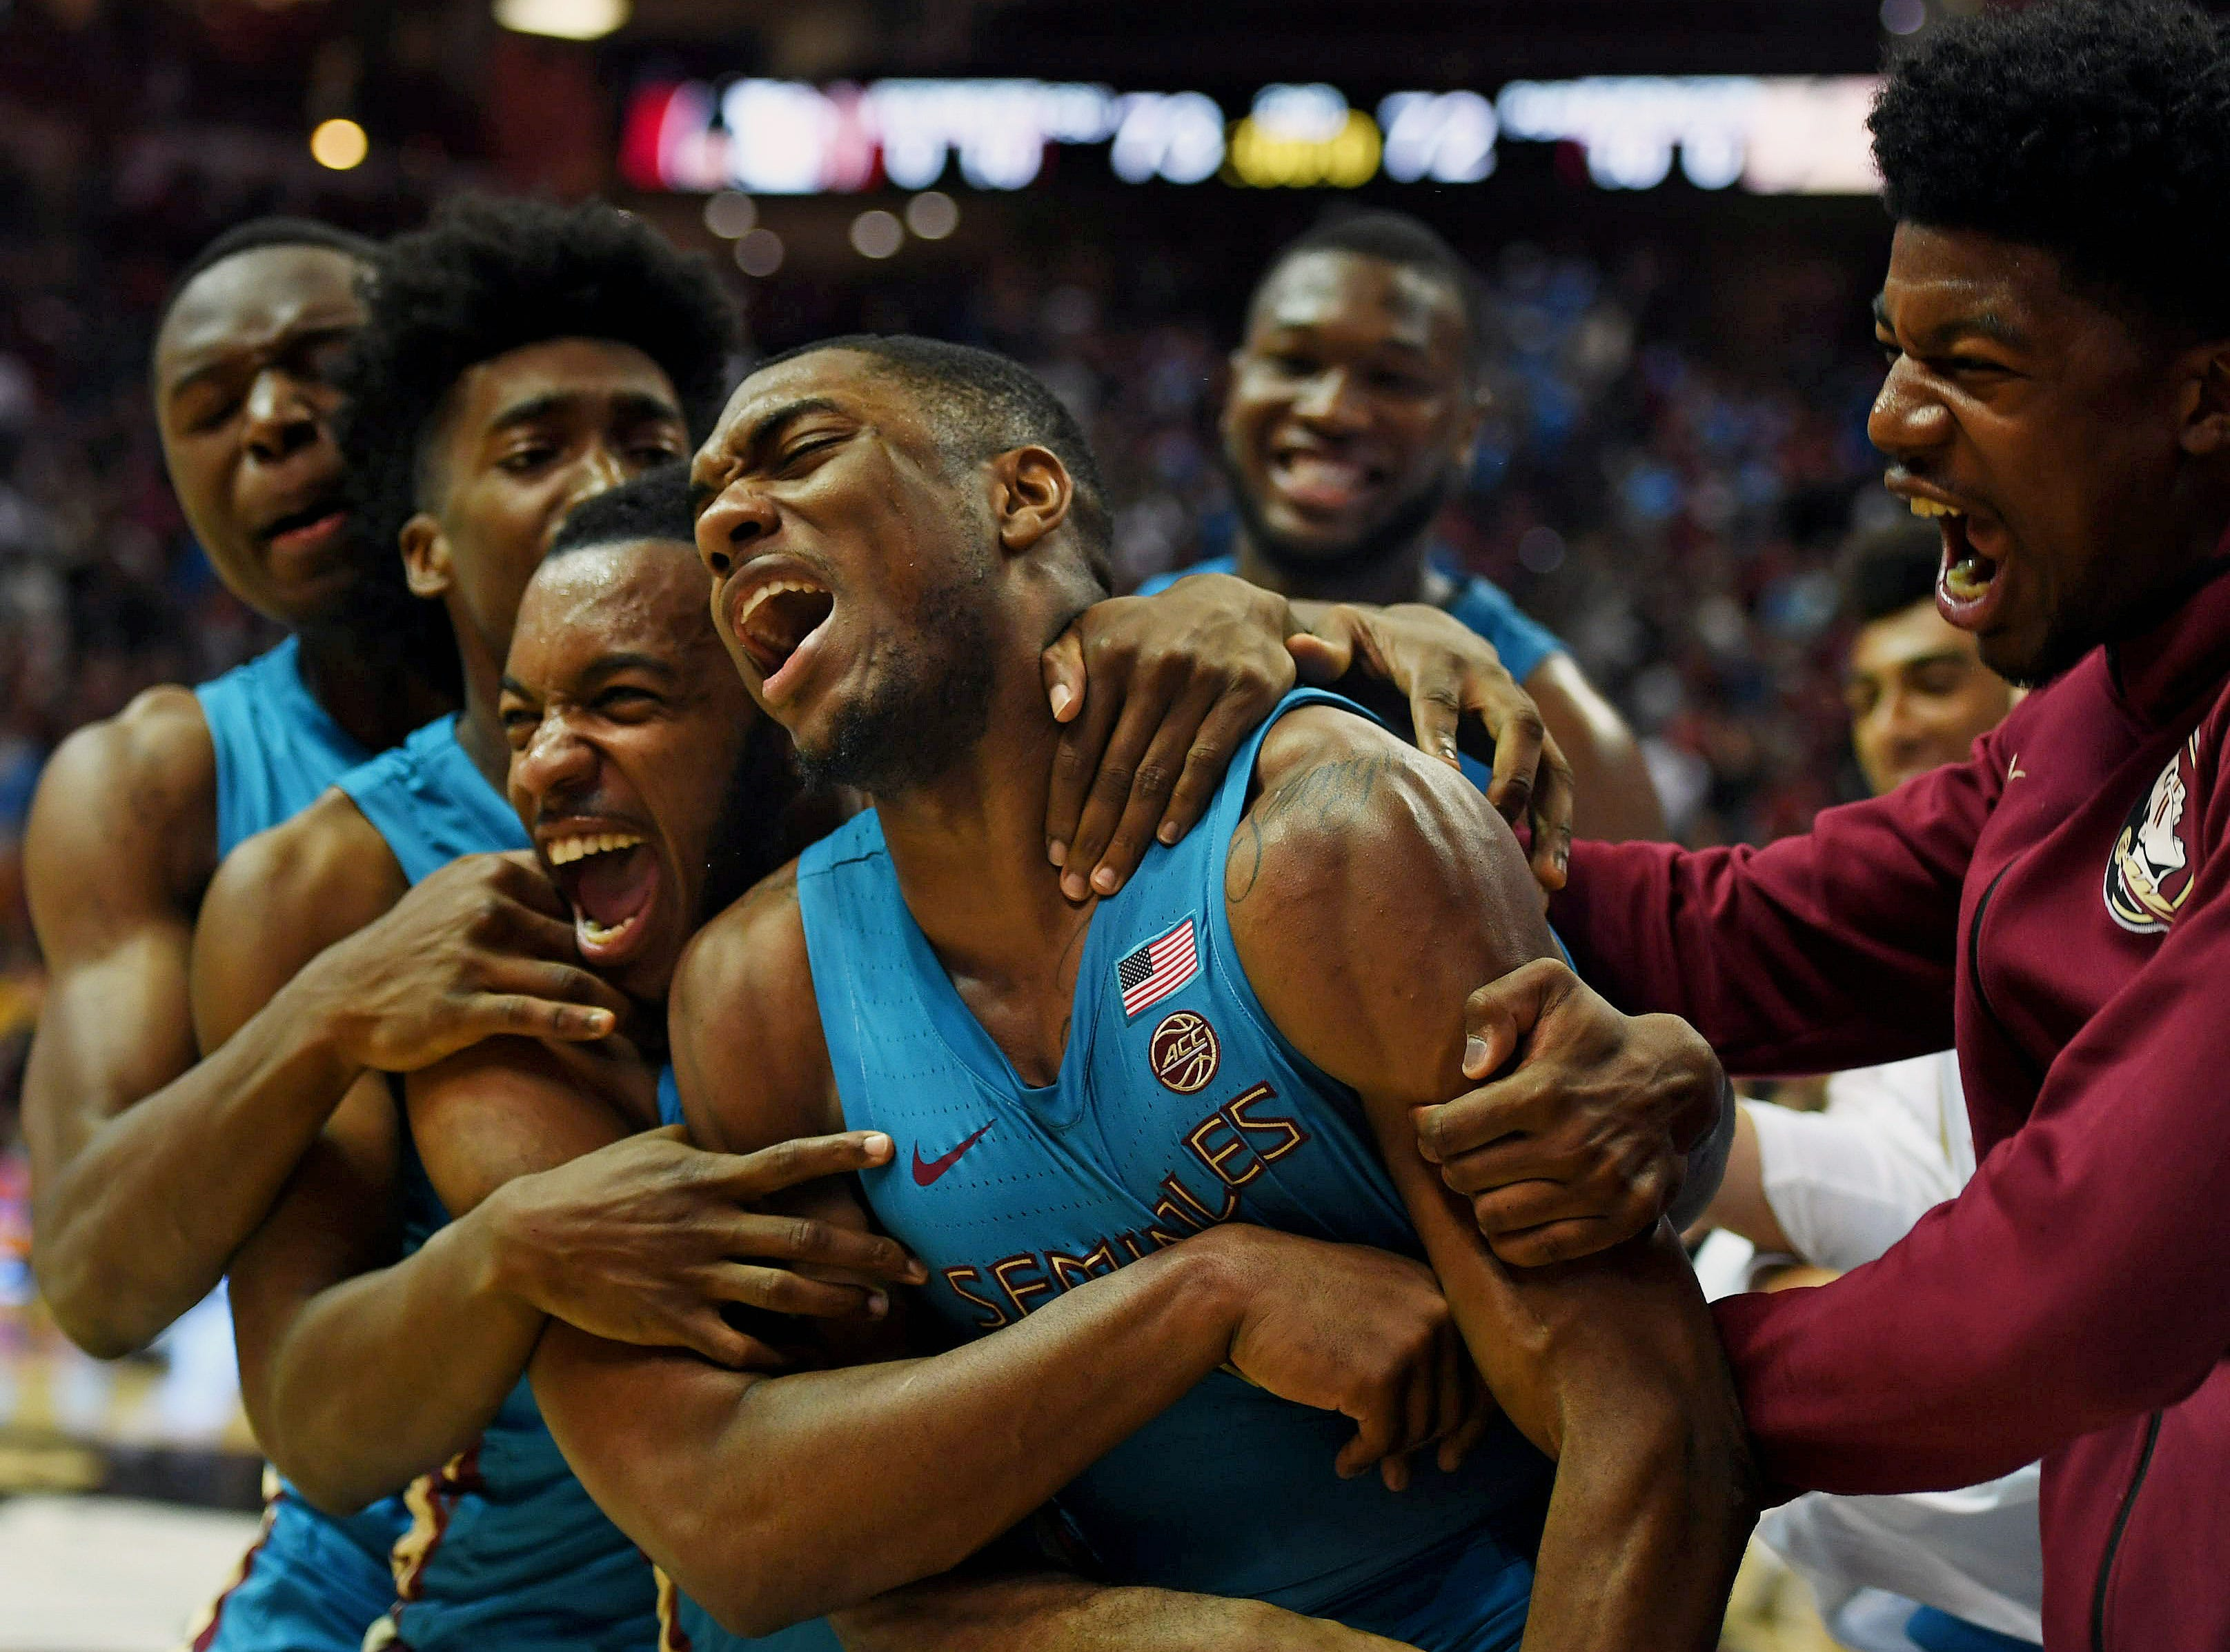 Nov 28, 2018; Tallahassee, FL, USA; Florida State Seminoles guard Trent Forrest (3) celebrates with teammates after defeating the Purdue Boilermakers at Donald L. Tucker Center. Mandatory Credit: Melina Myers-USA TODAY Sports